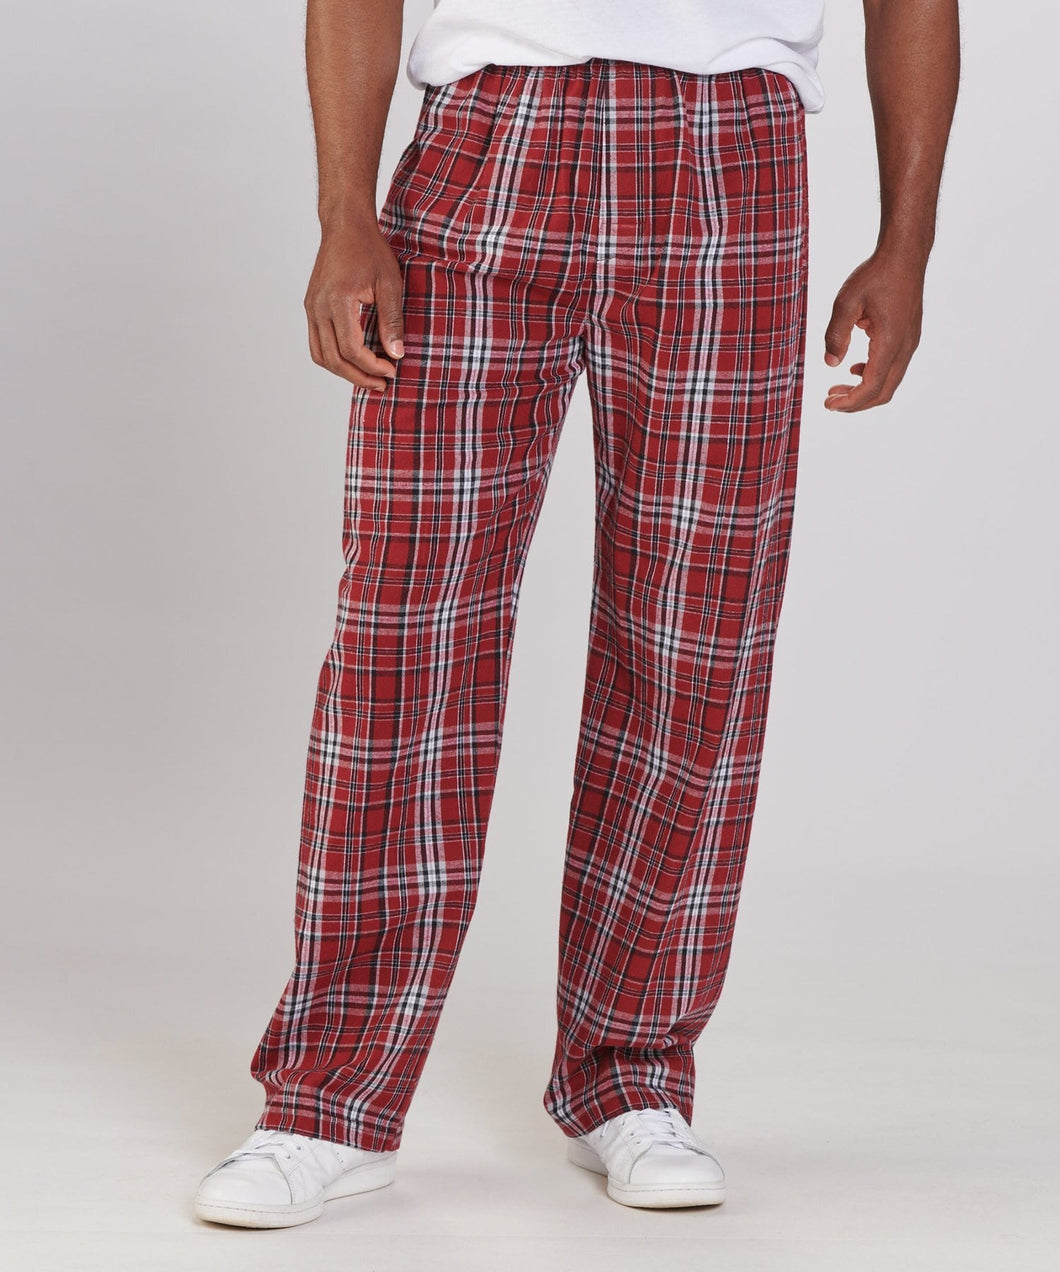 GUYS & CO. - Men's Maroon Plaid Flannel Pants